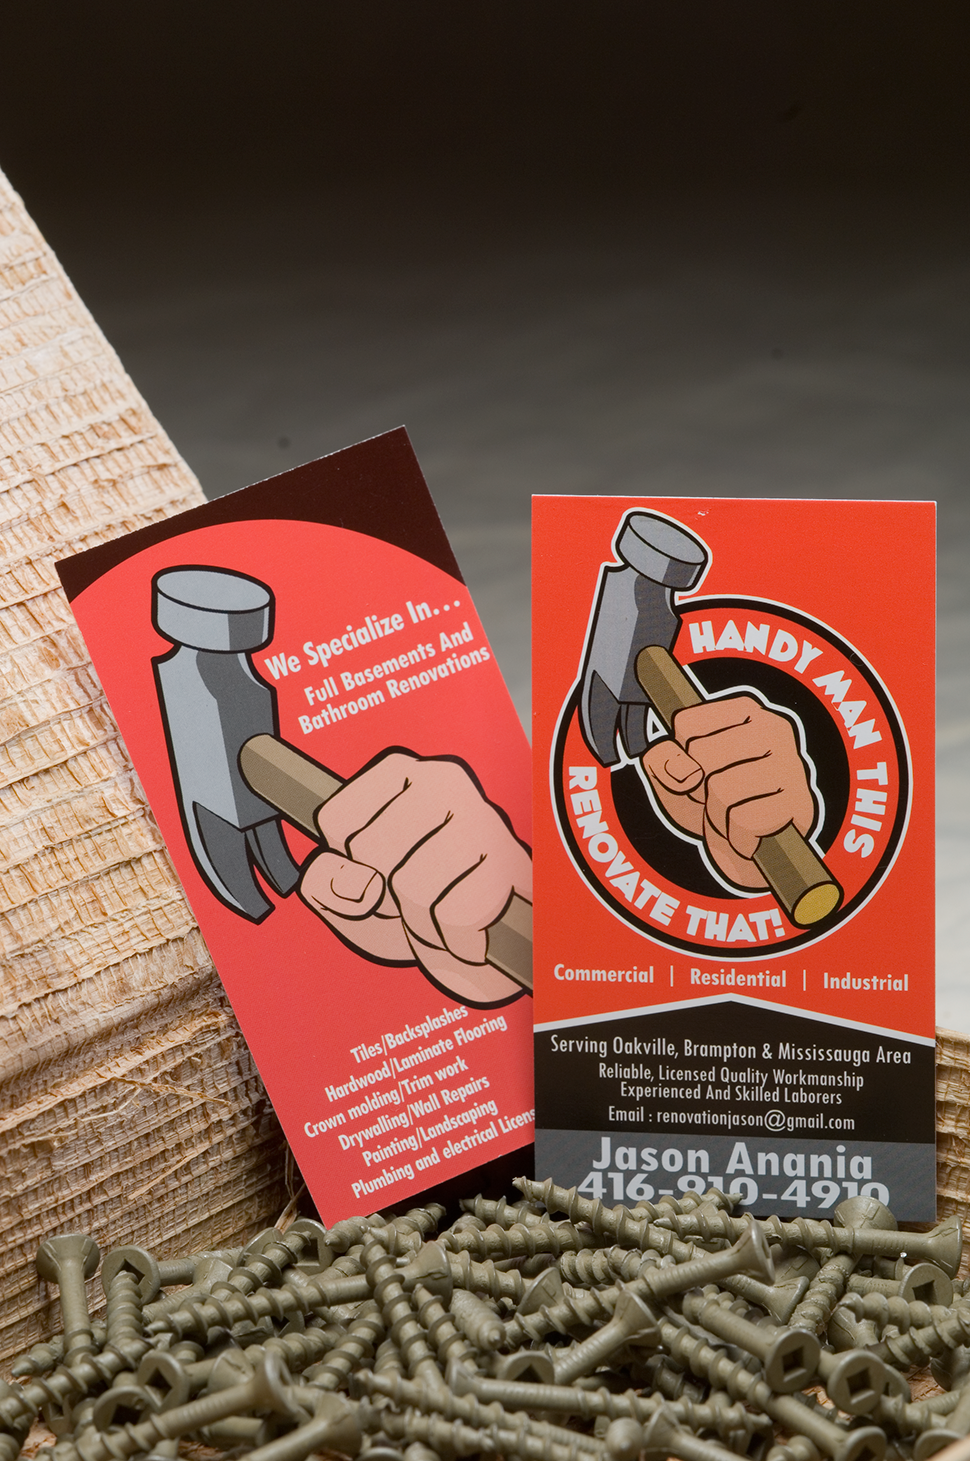 Mississauga Business Card Design by Kevin J. Johnston - Handyman This Renovate That